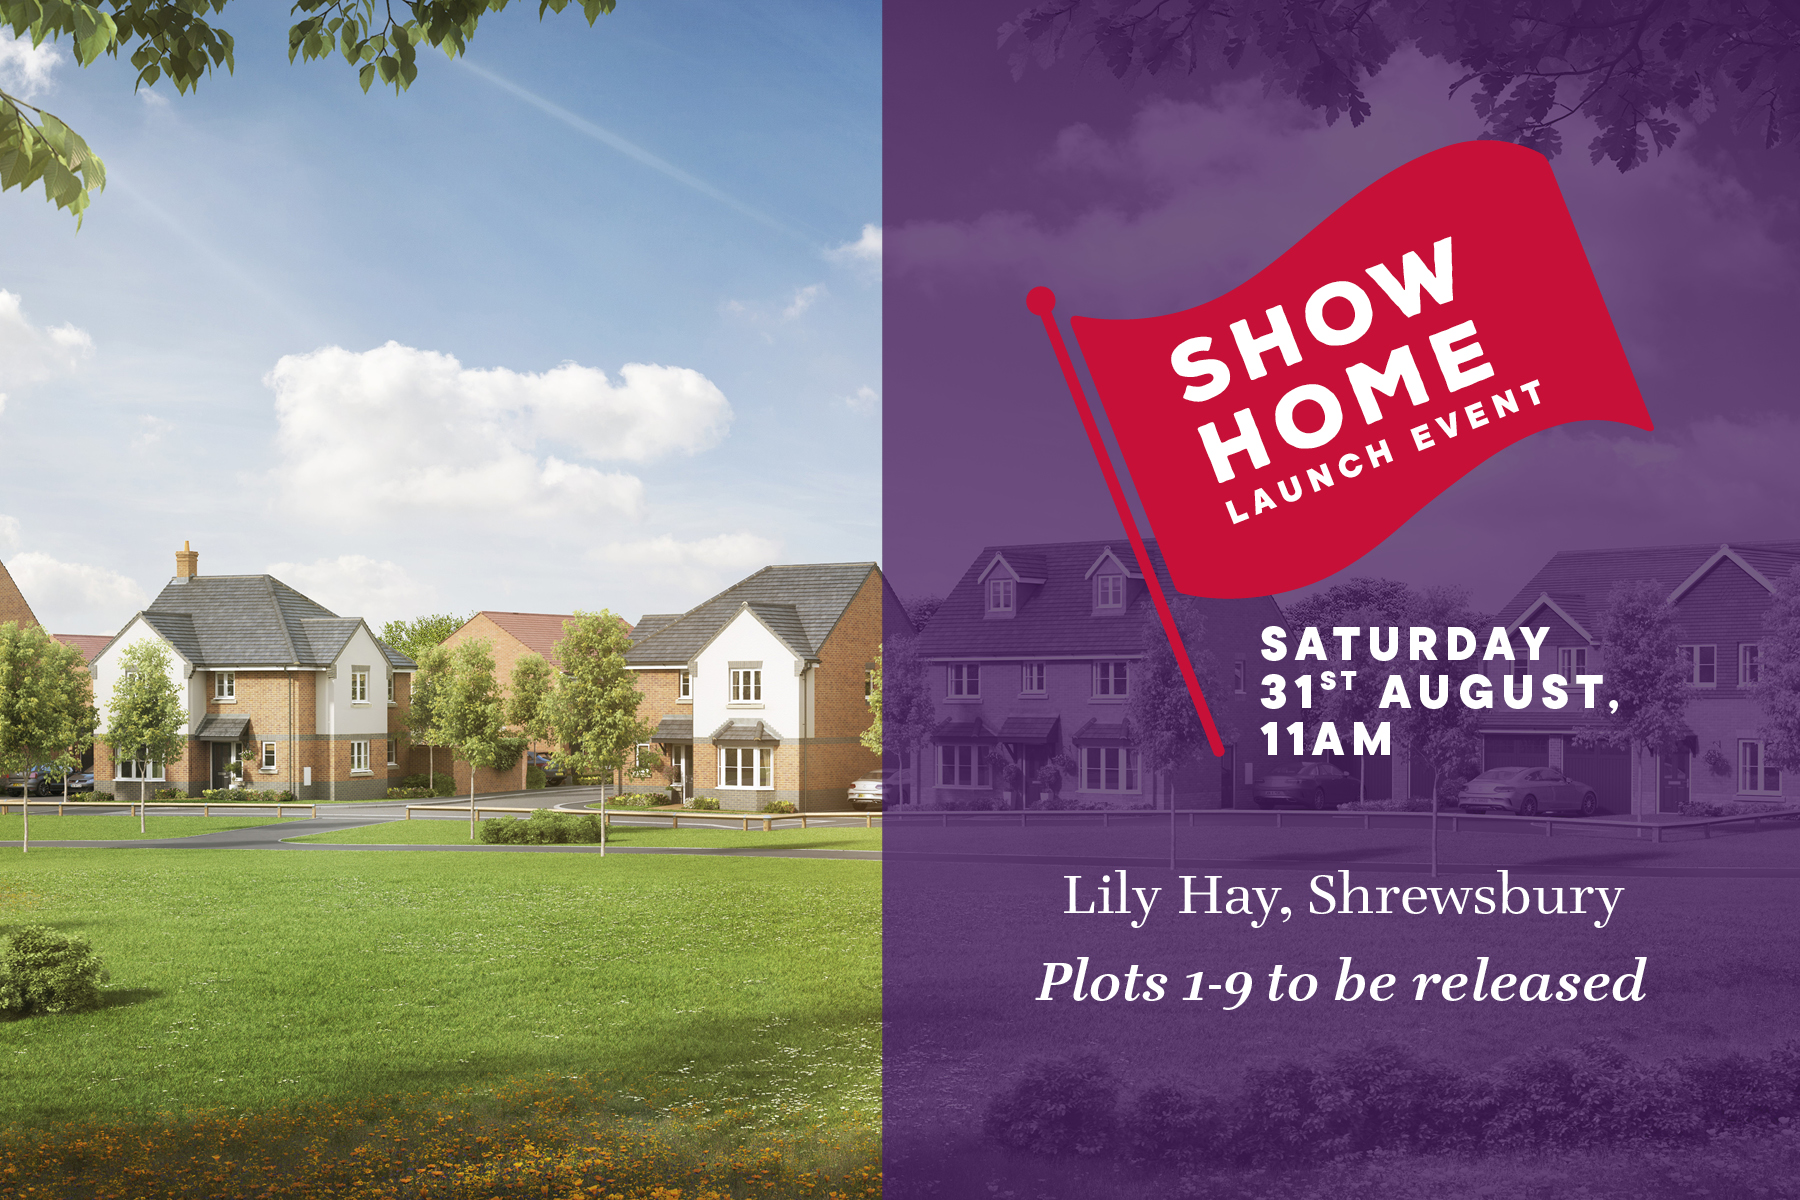 Lily Hay Web Showhome Event